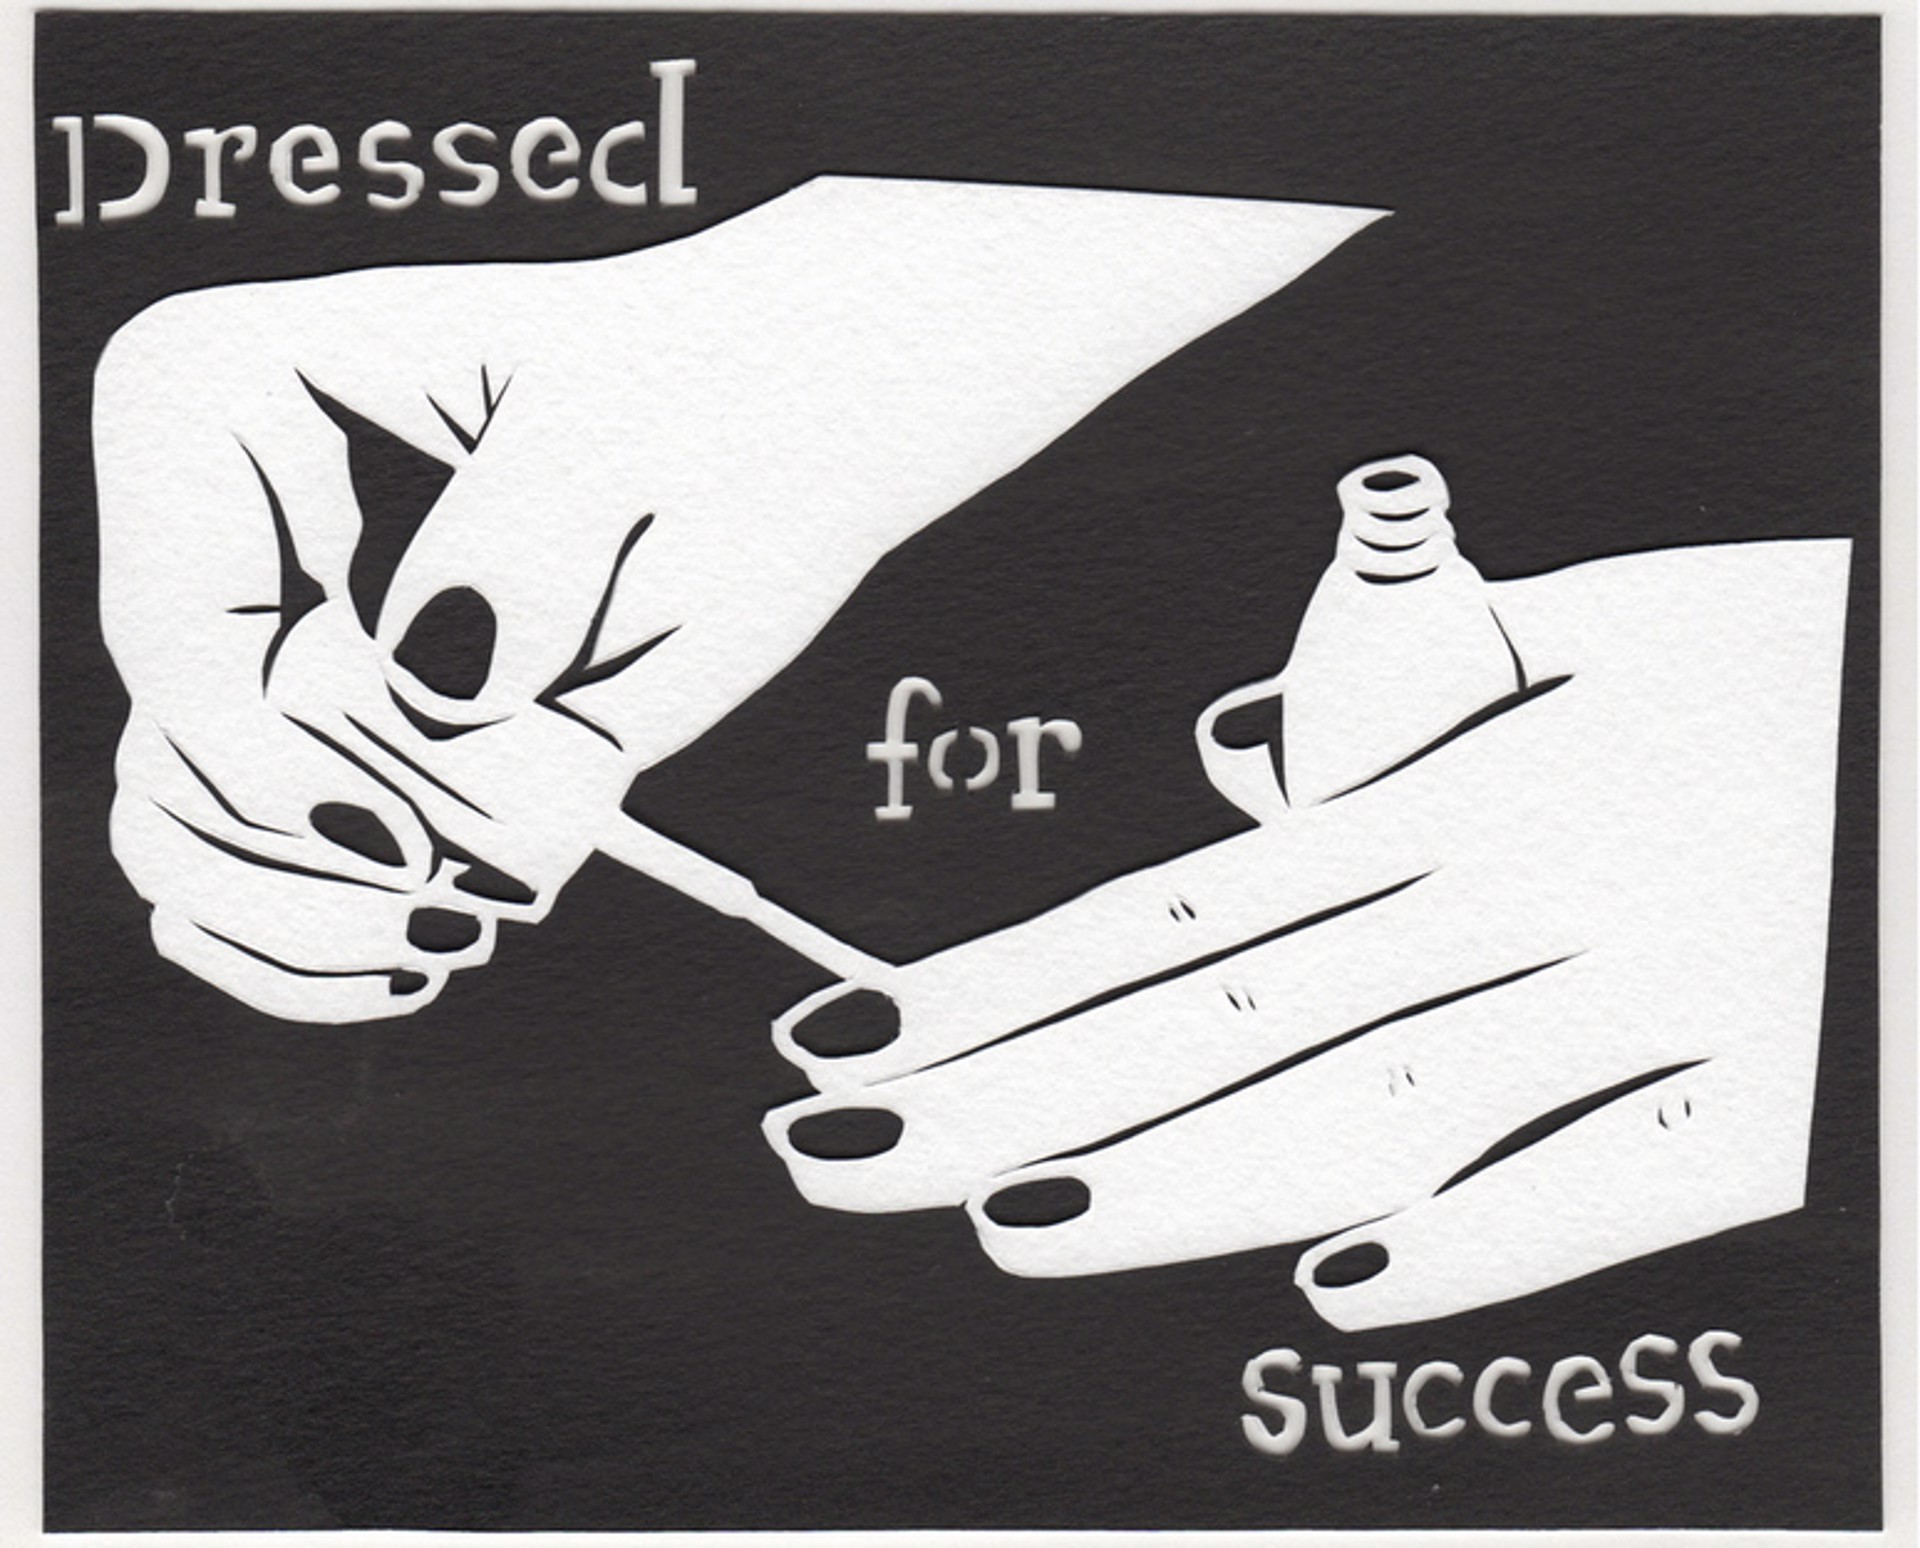 Dressed for Success by Lauren Iida | Early Works